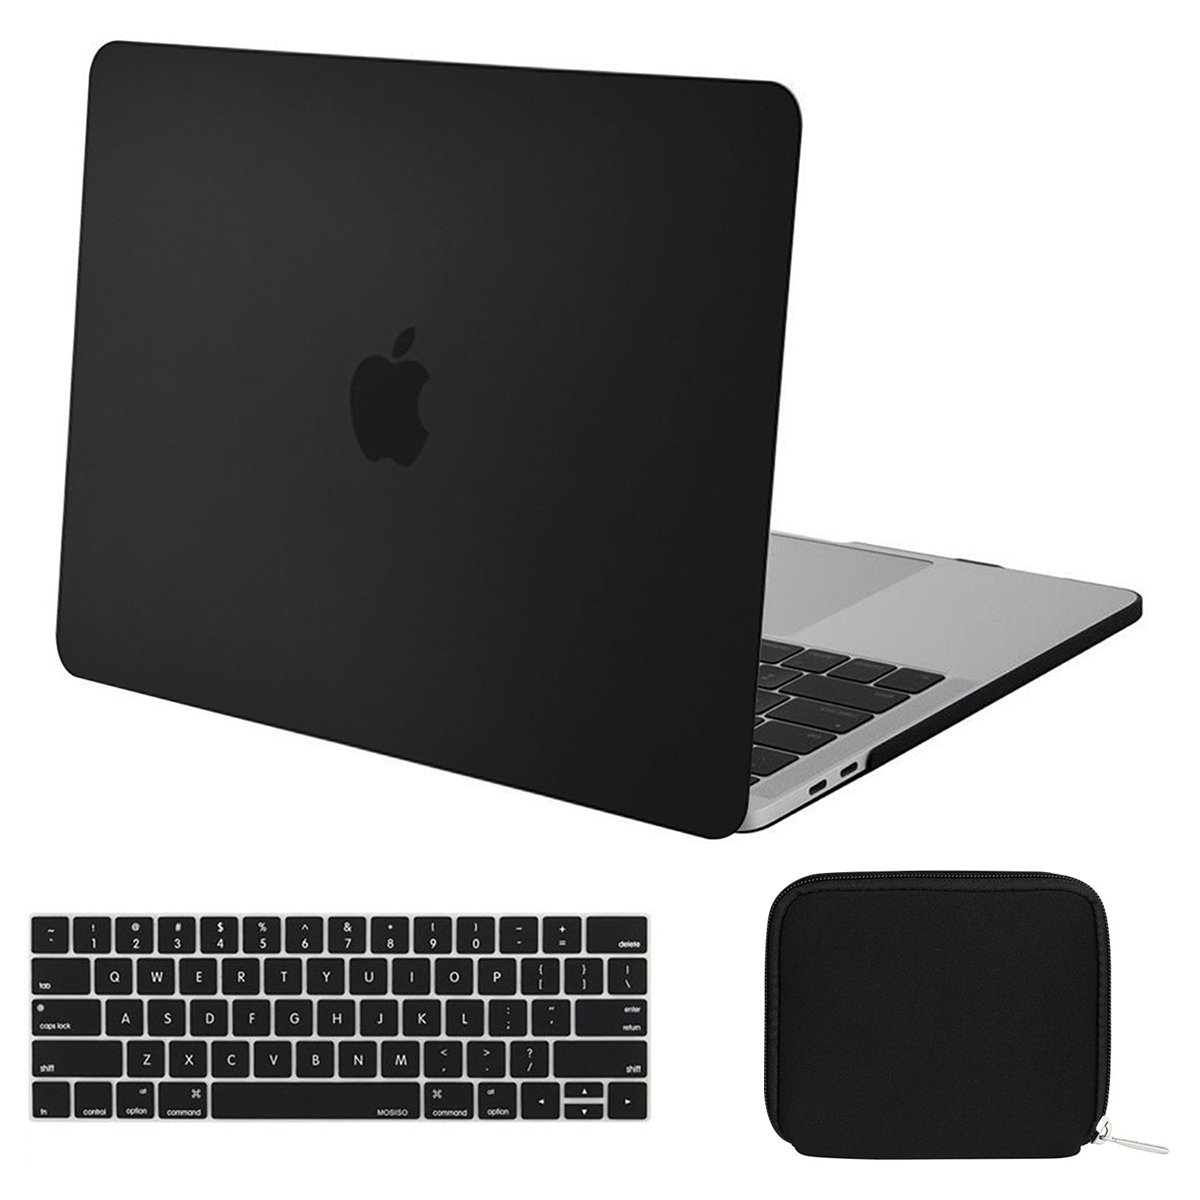 MOSISO MacBook Pro 15 Case 2018 2017 2016 Release A1990/A1707 with Touch Bar, Plastic Hard Shell & Keyboard Cover & Water Repellent Lycra Storage Bag Compatible Newest Mac Pro 15 Inch, Black